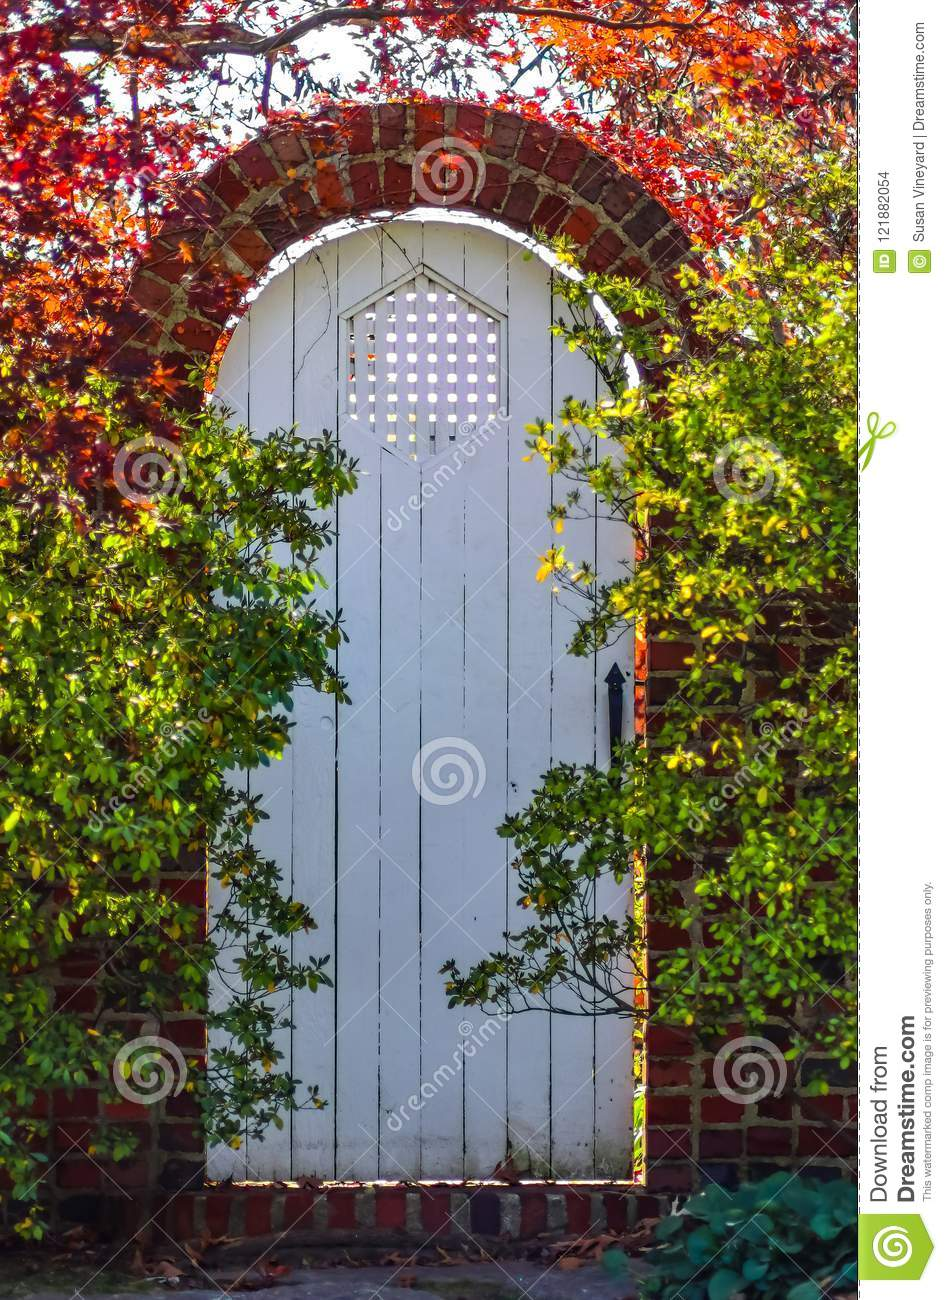 white wooden arched garden gate in autumn in brick wall surrounded